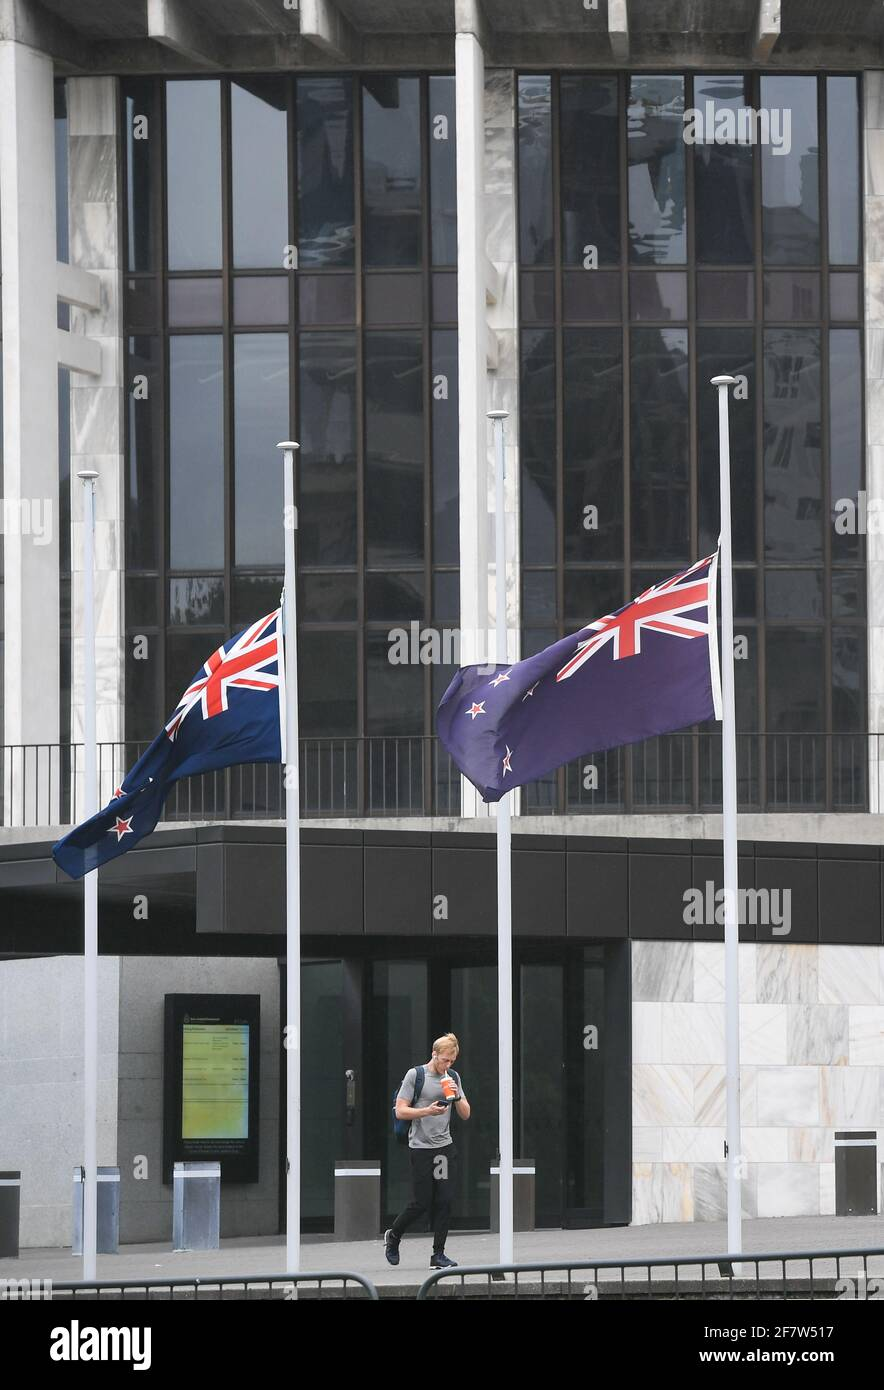 Wellington, Wellington. 10th Apr, 2021. New Zealand national flags fly at half-mast in front of Beehive, the parliament building of New Zealand, to show condolences over death of Britain's Prince Philip, in Wellington, New Zealand on April 10, 2021. Credit: Guo Lei/Xinhua/Alamy Live News Stock Photo